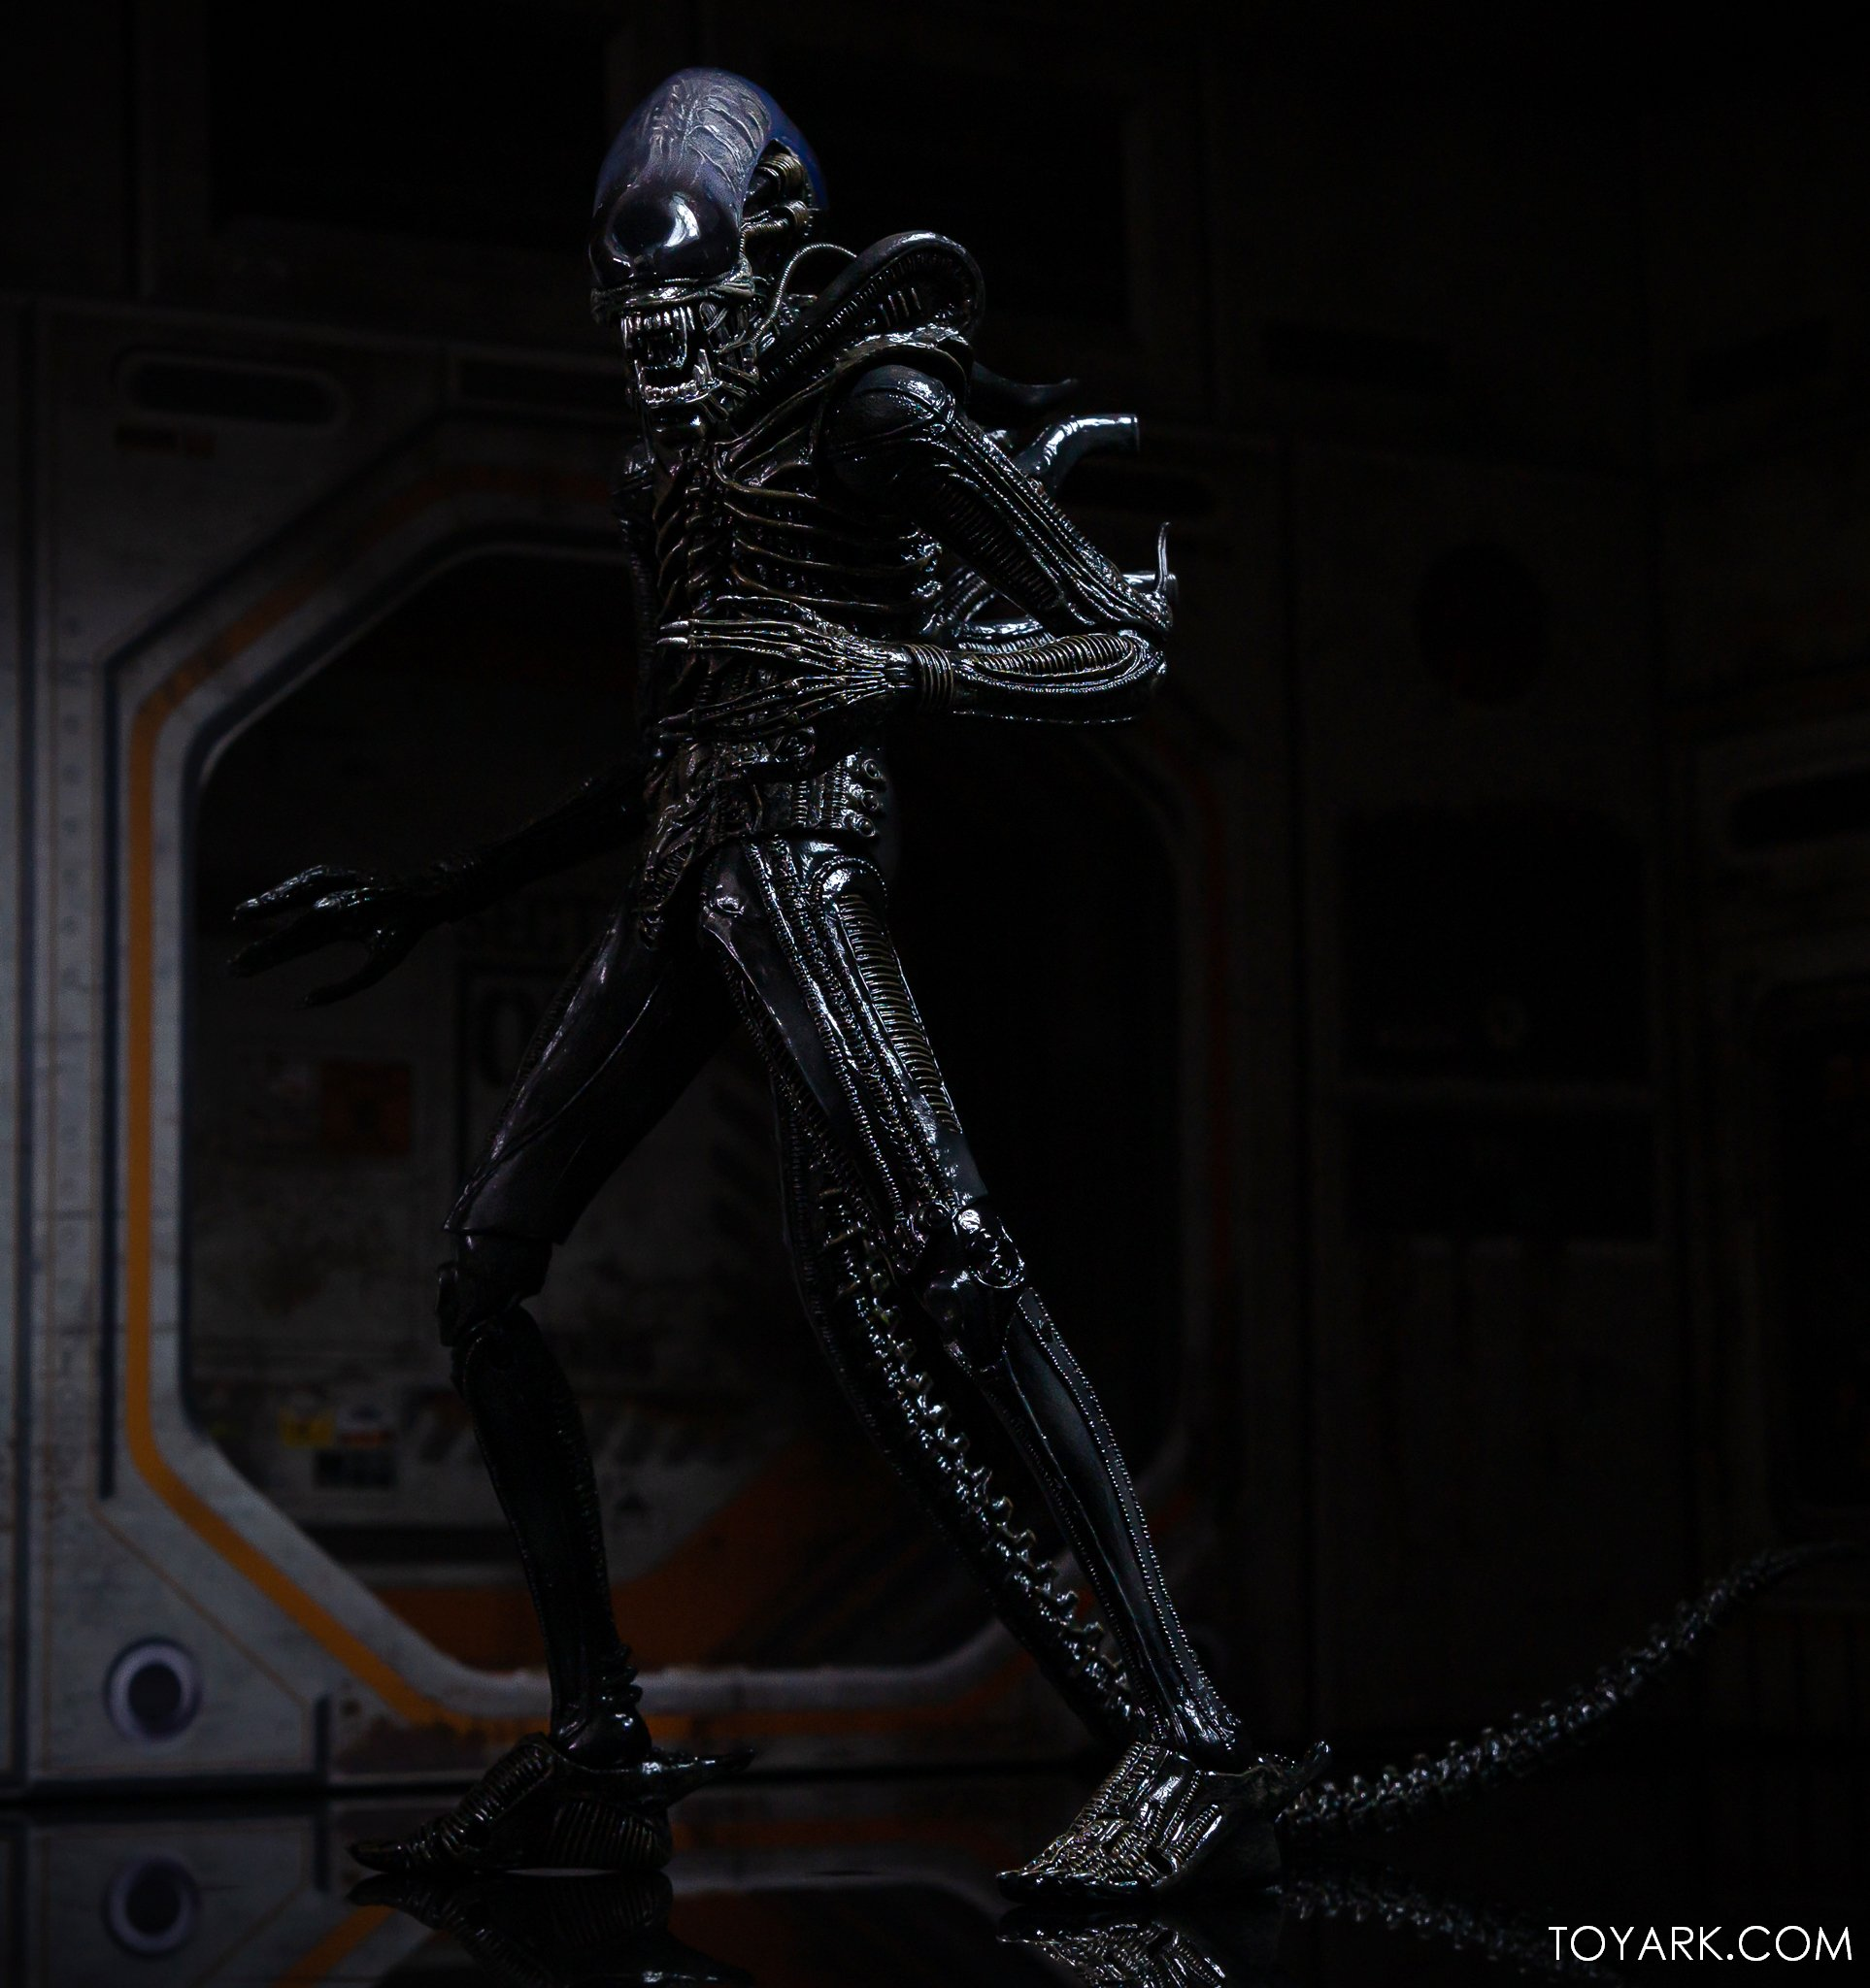 https://news.toyark.com/wp-content/uploads/sites/4/2020/01/NECA-Big-Chap-Alien-Ultimate-041.jpg